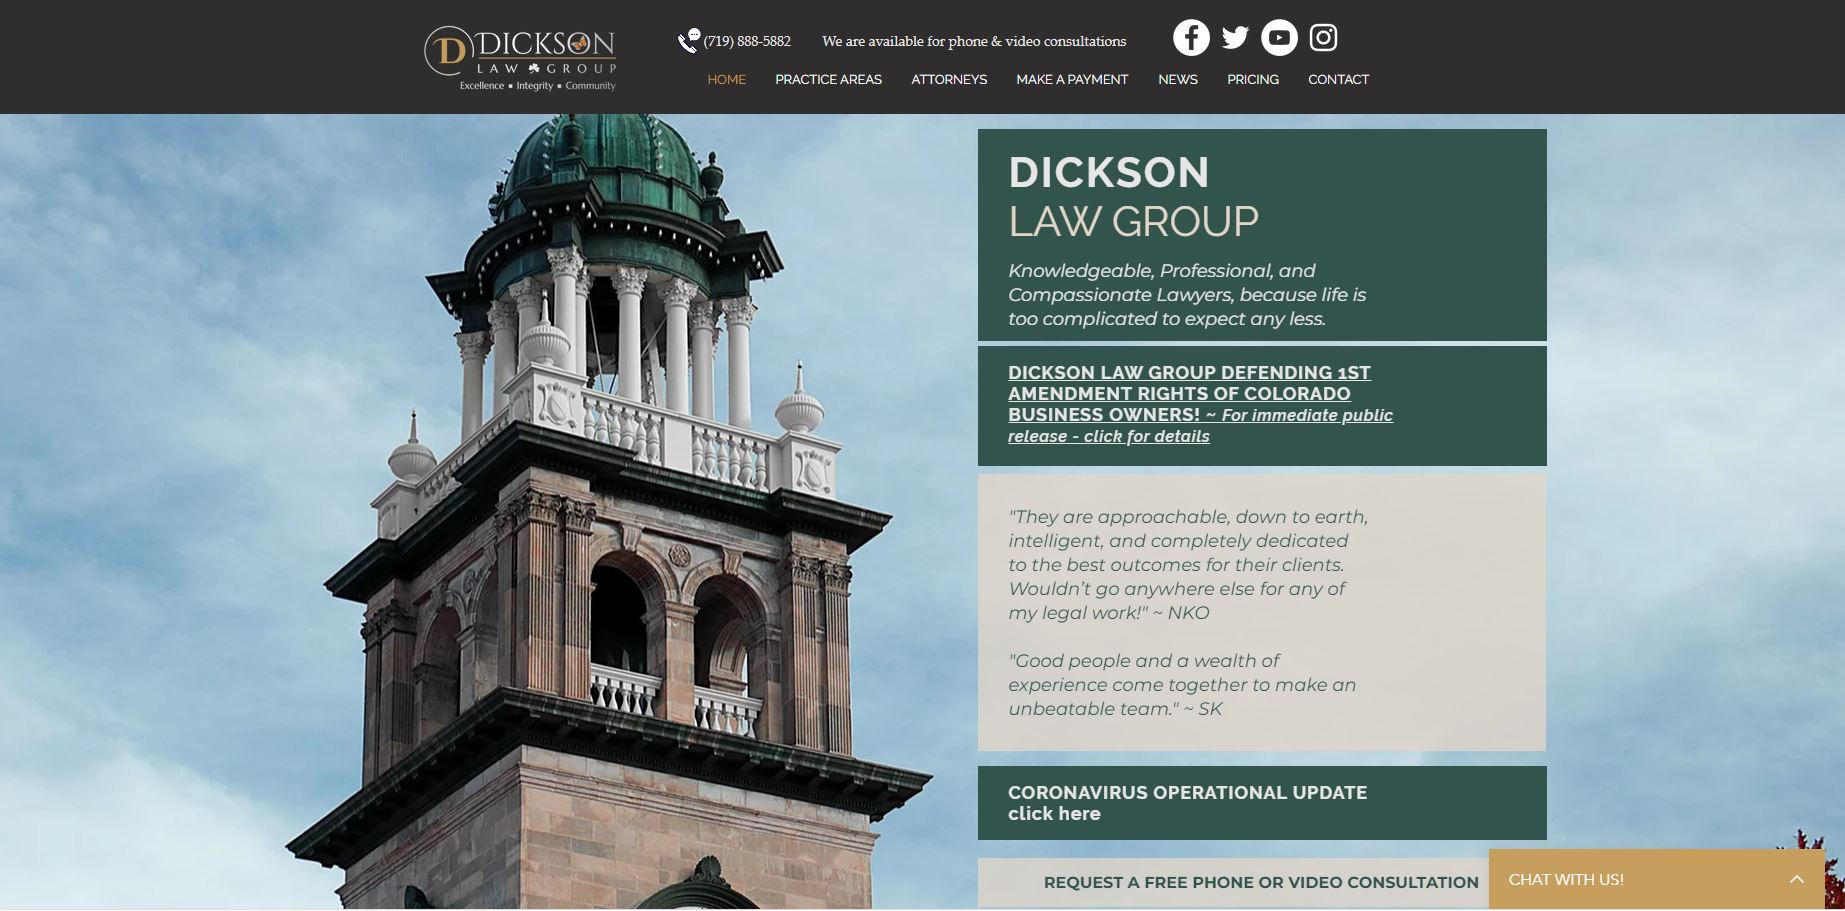 dickson-law-group